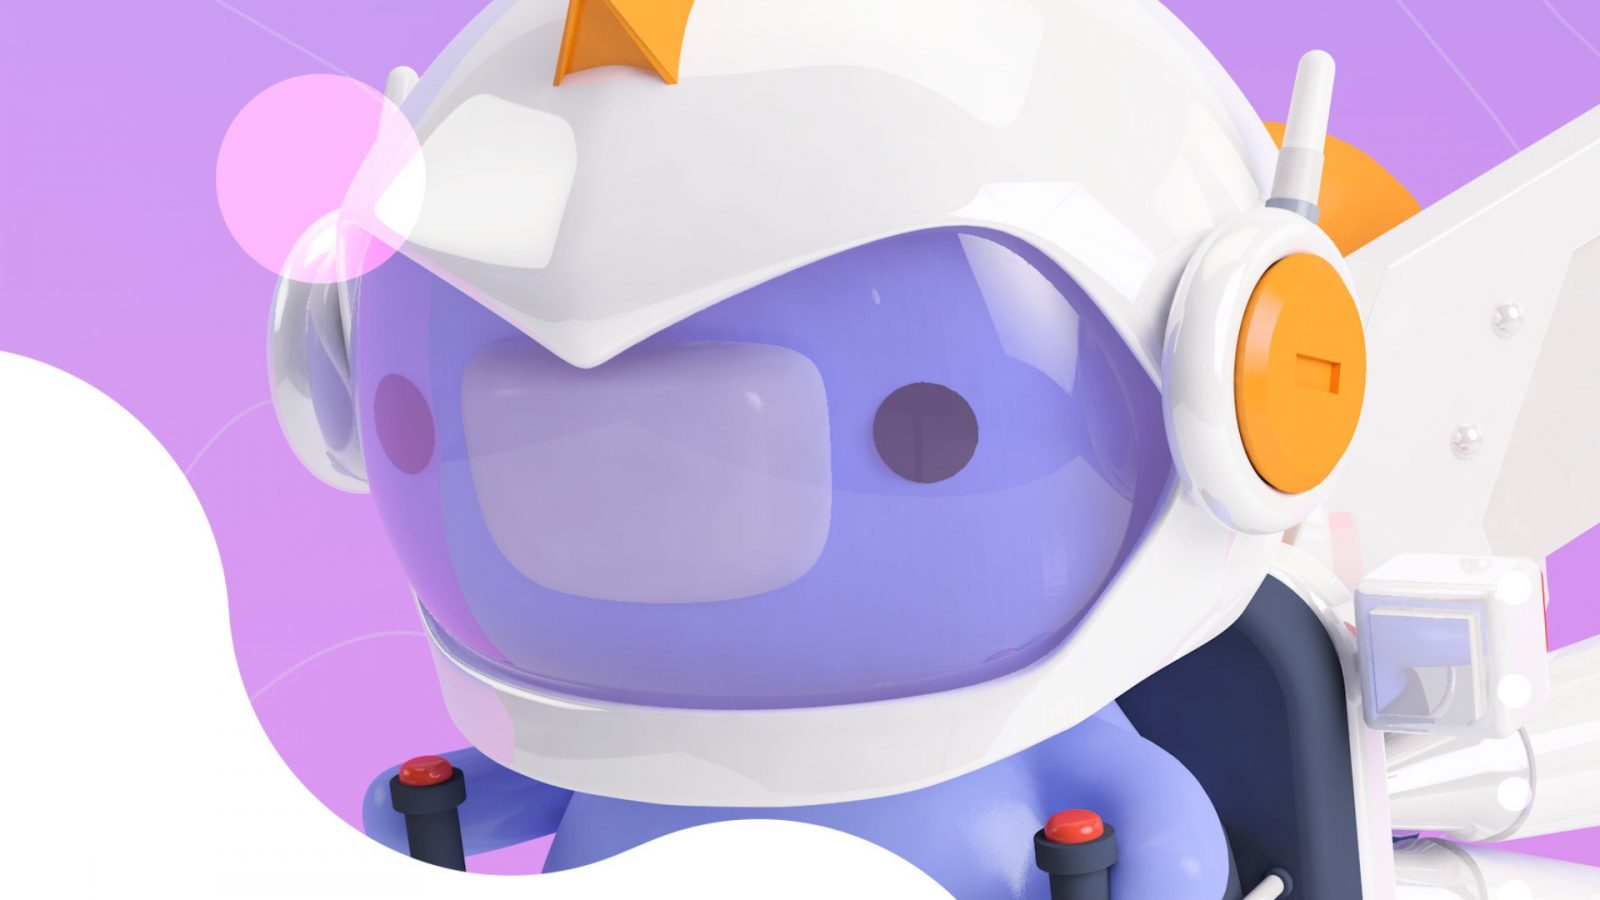 Discord Nitro Games Are Coming to an End This October